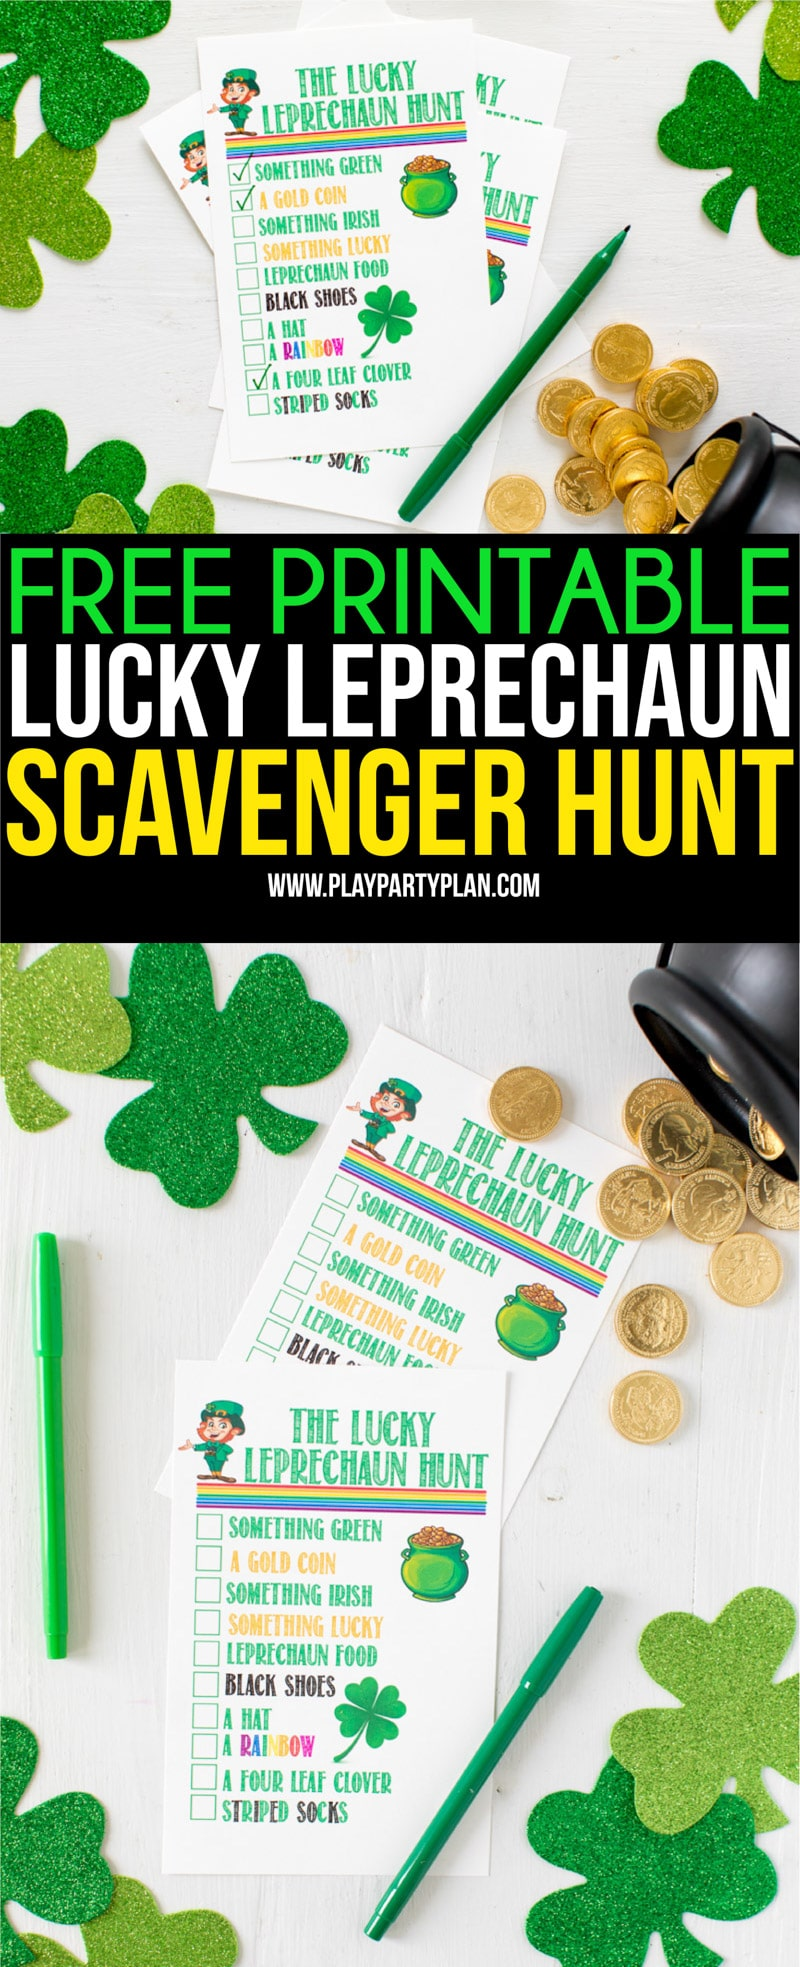 This leprechaun hunt is the perfect St. Patrick's Day activity! Whether you're having a party or just entertaining kids at home - this is one of the most fun activities ever! See who can find a shamrock, St. Patrick's Day decorations, colors, and more! Free printables you can download and print! #StPatricksDay #StPatricksDayParty #kidsactivities